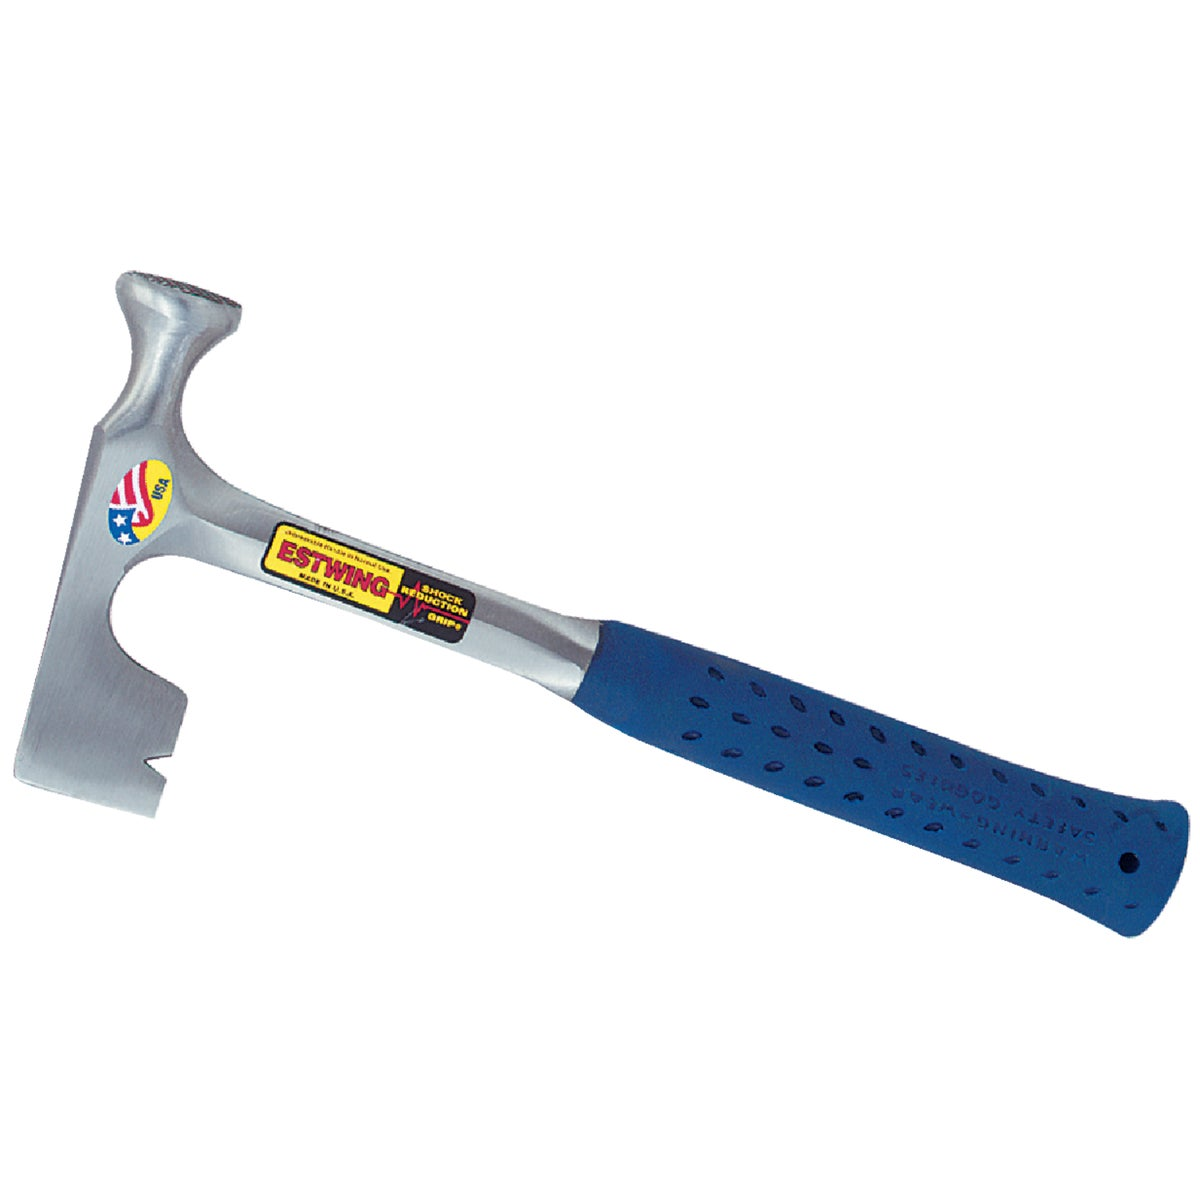 14OZ DRYWALL HAMMER - E3-11 by Estwing Mfg Co